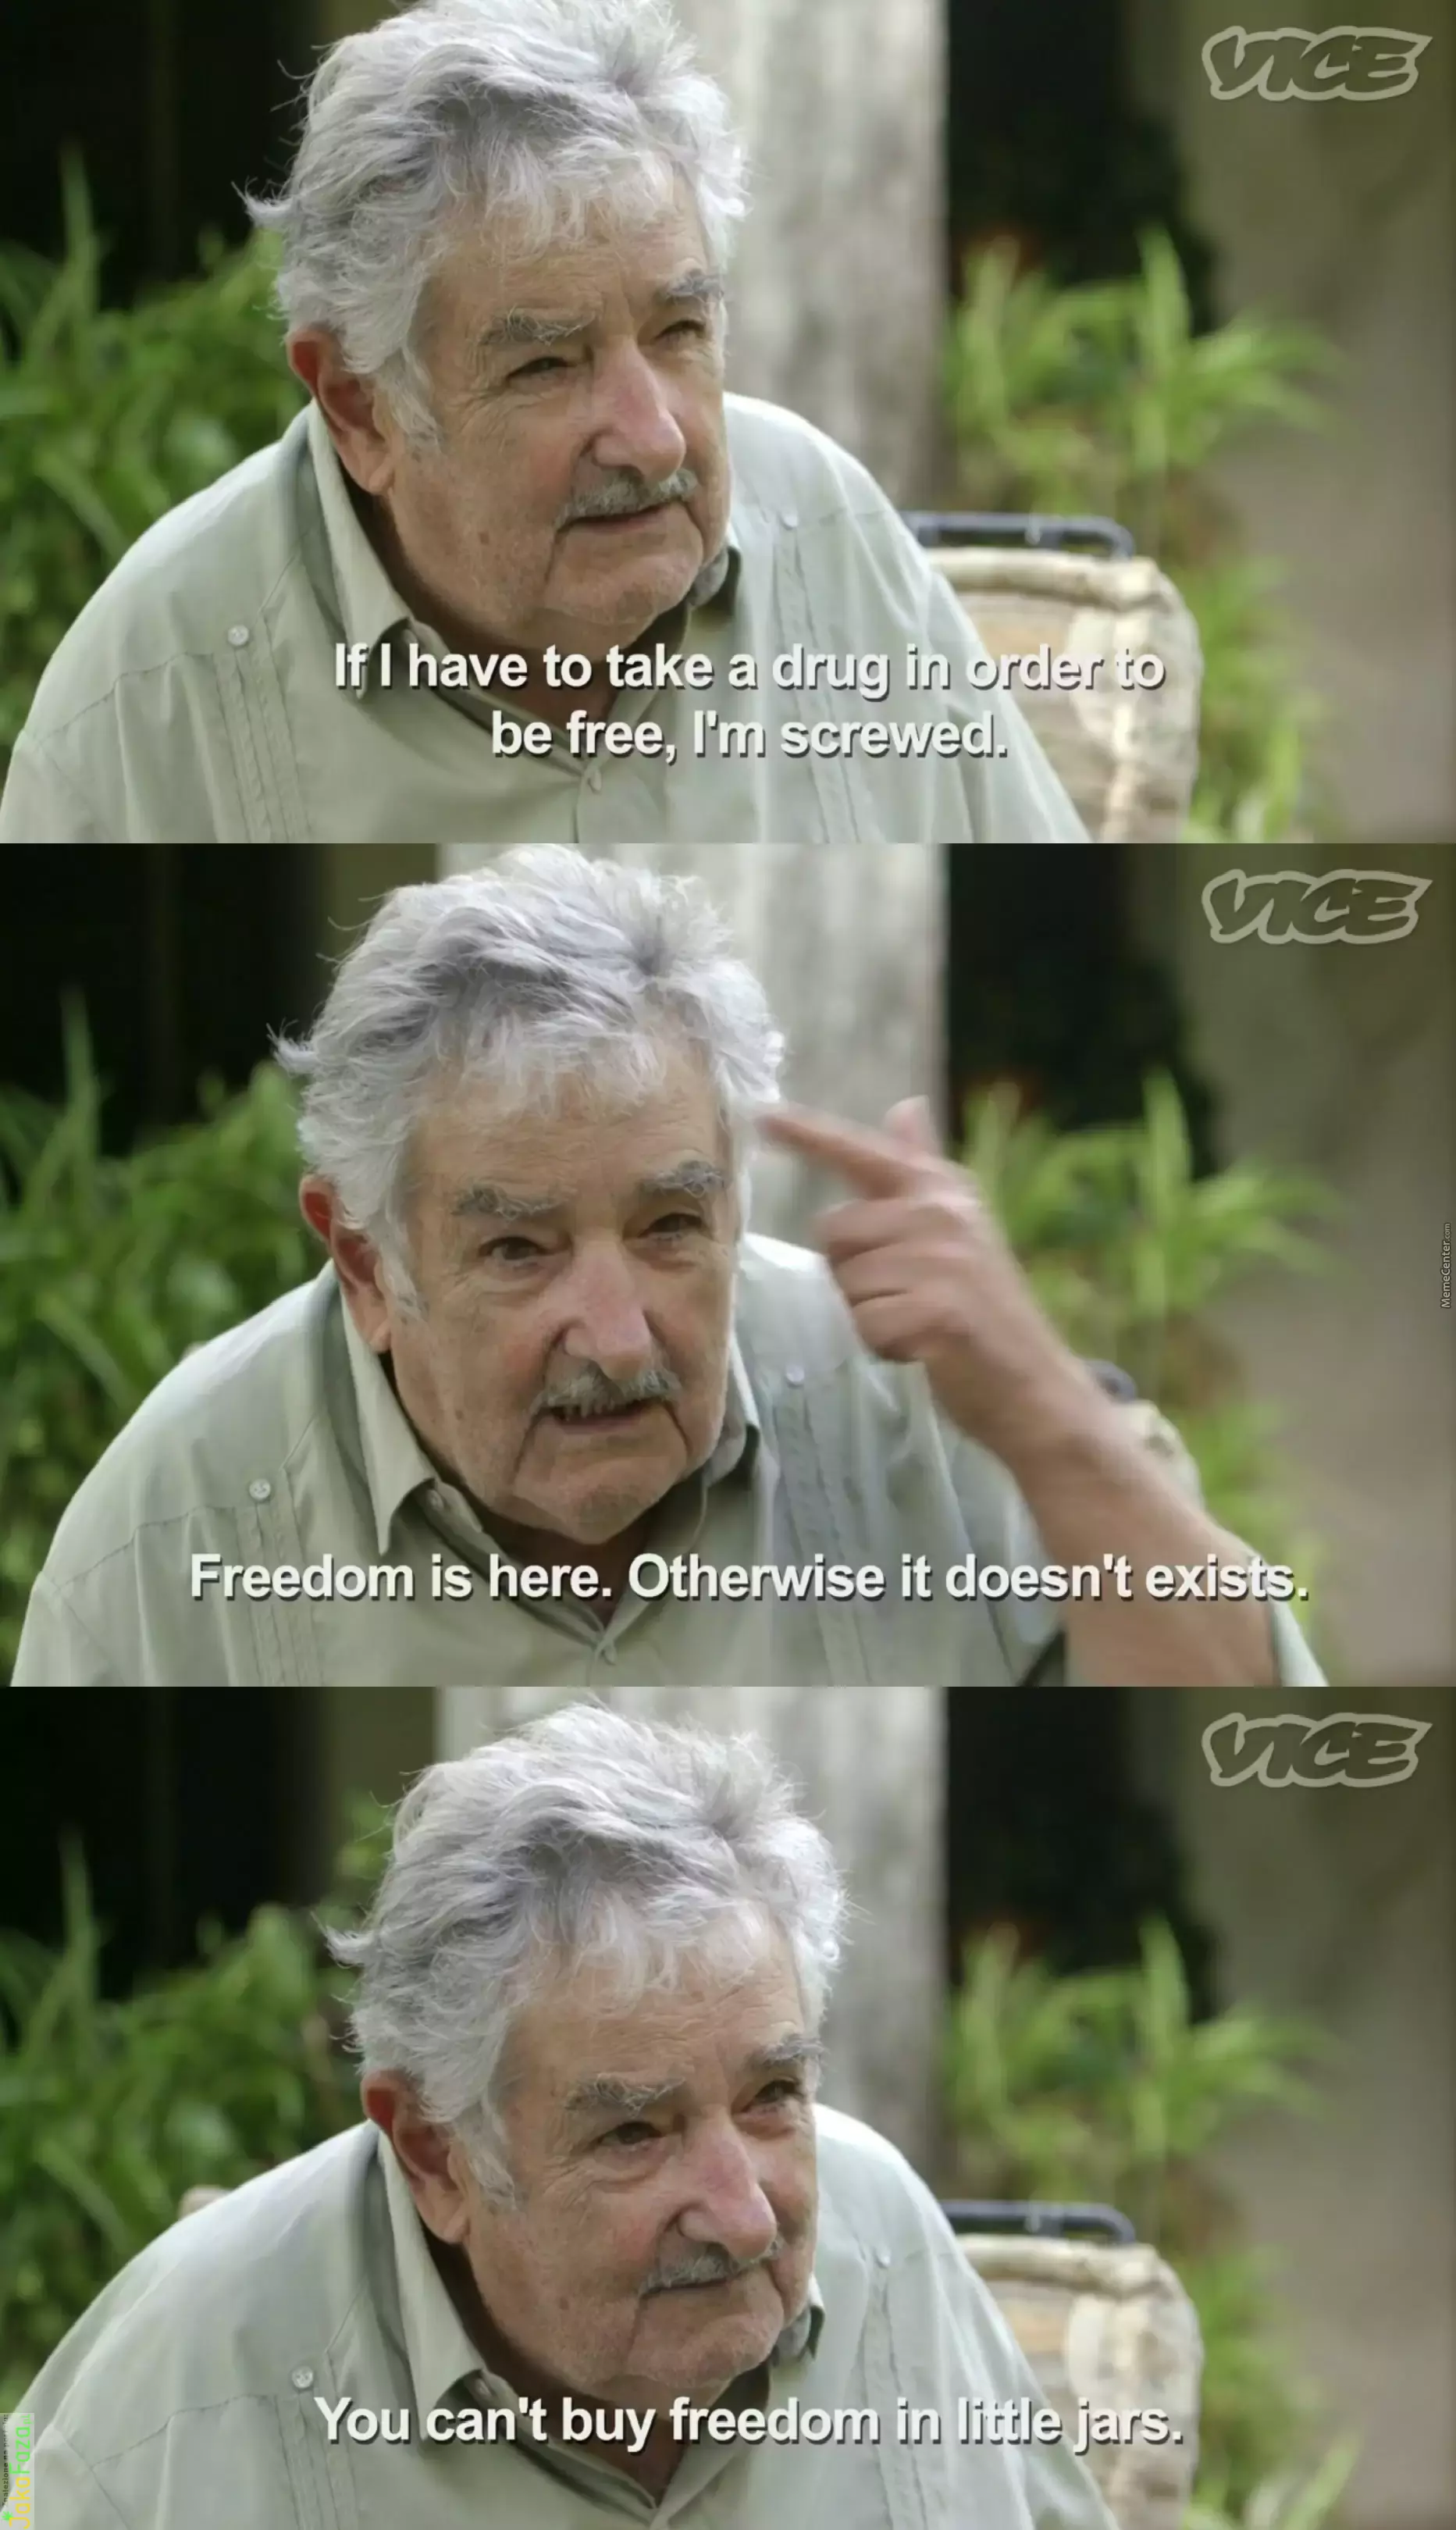 President Of Uruguay Was Asked If Weed Legalization Could Lead To More Freedom marihuana